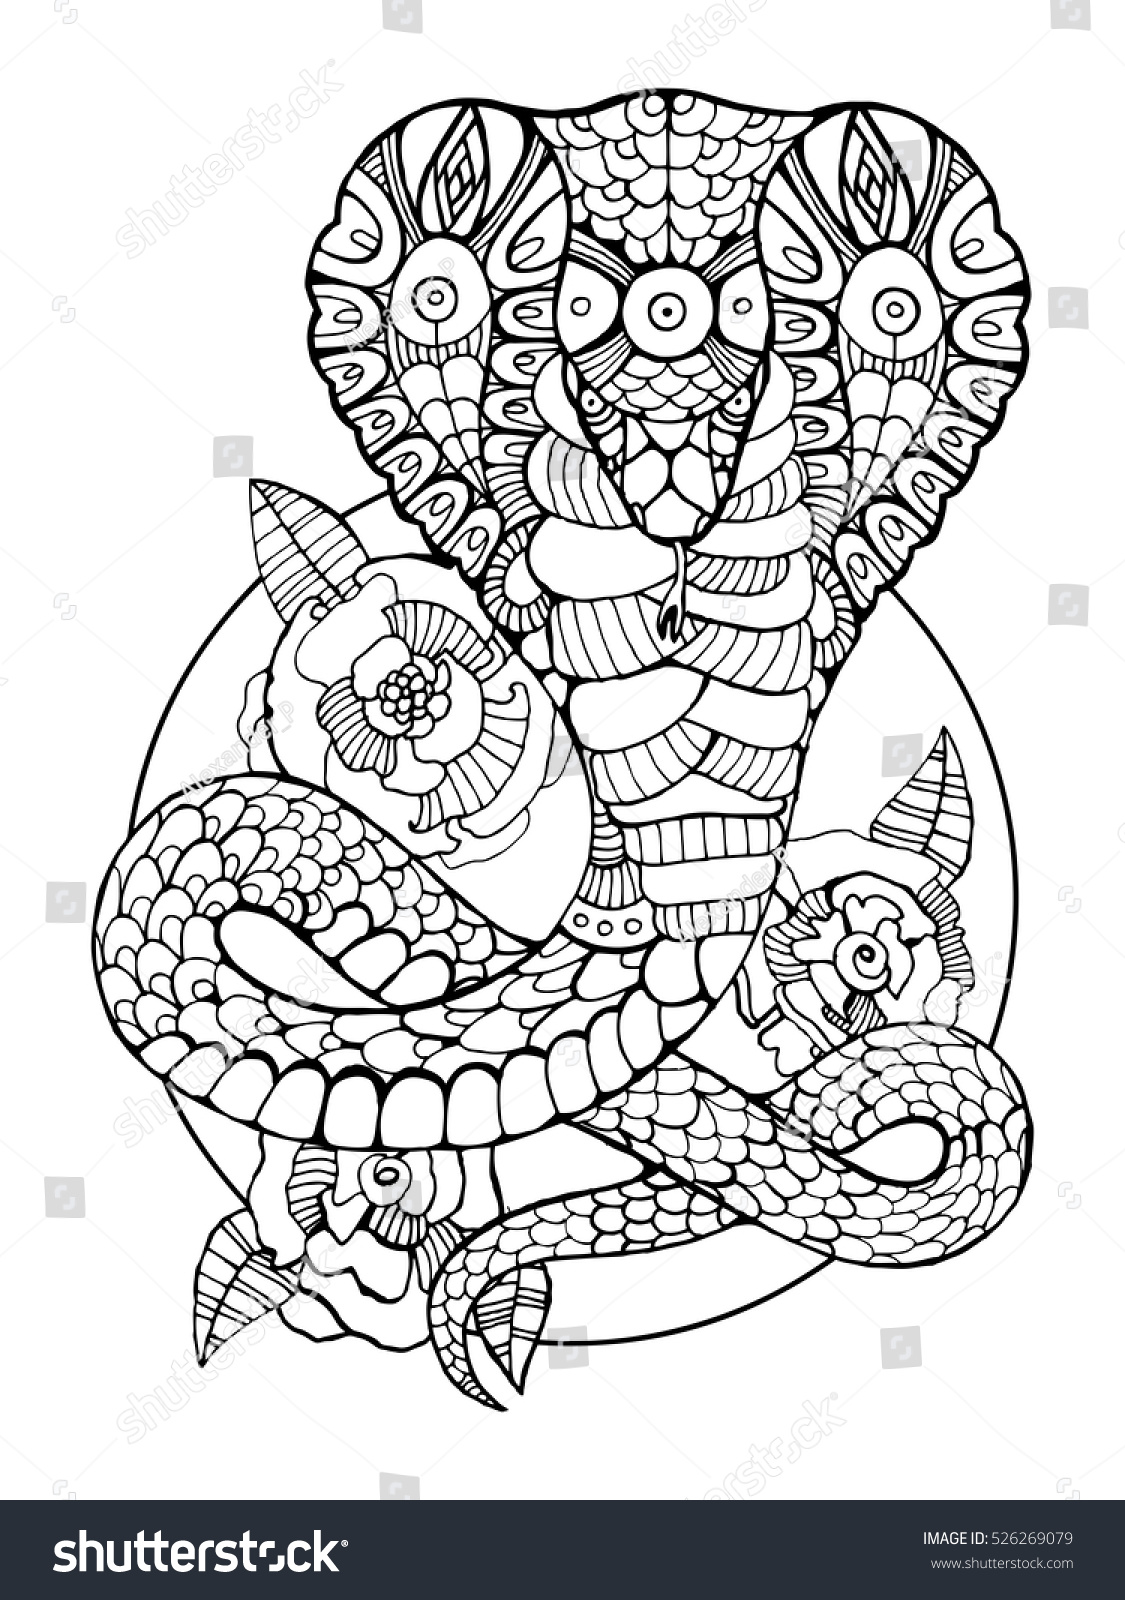 Stress coloring books - Anti Stress Coloring Book Japan Cobra Snake Coloring Book For Adults Vector Illustration Anti Stress